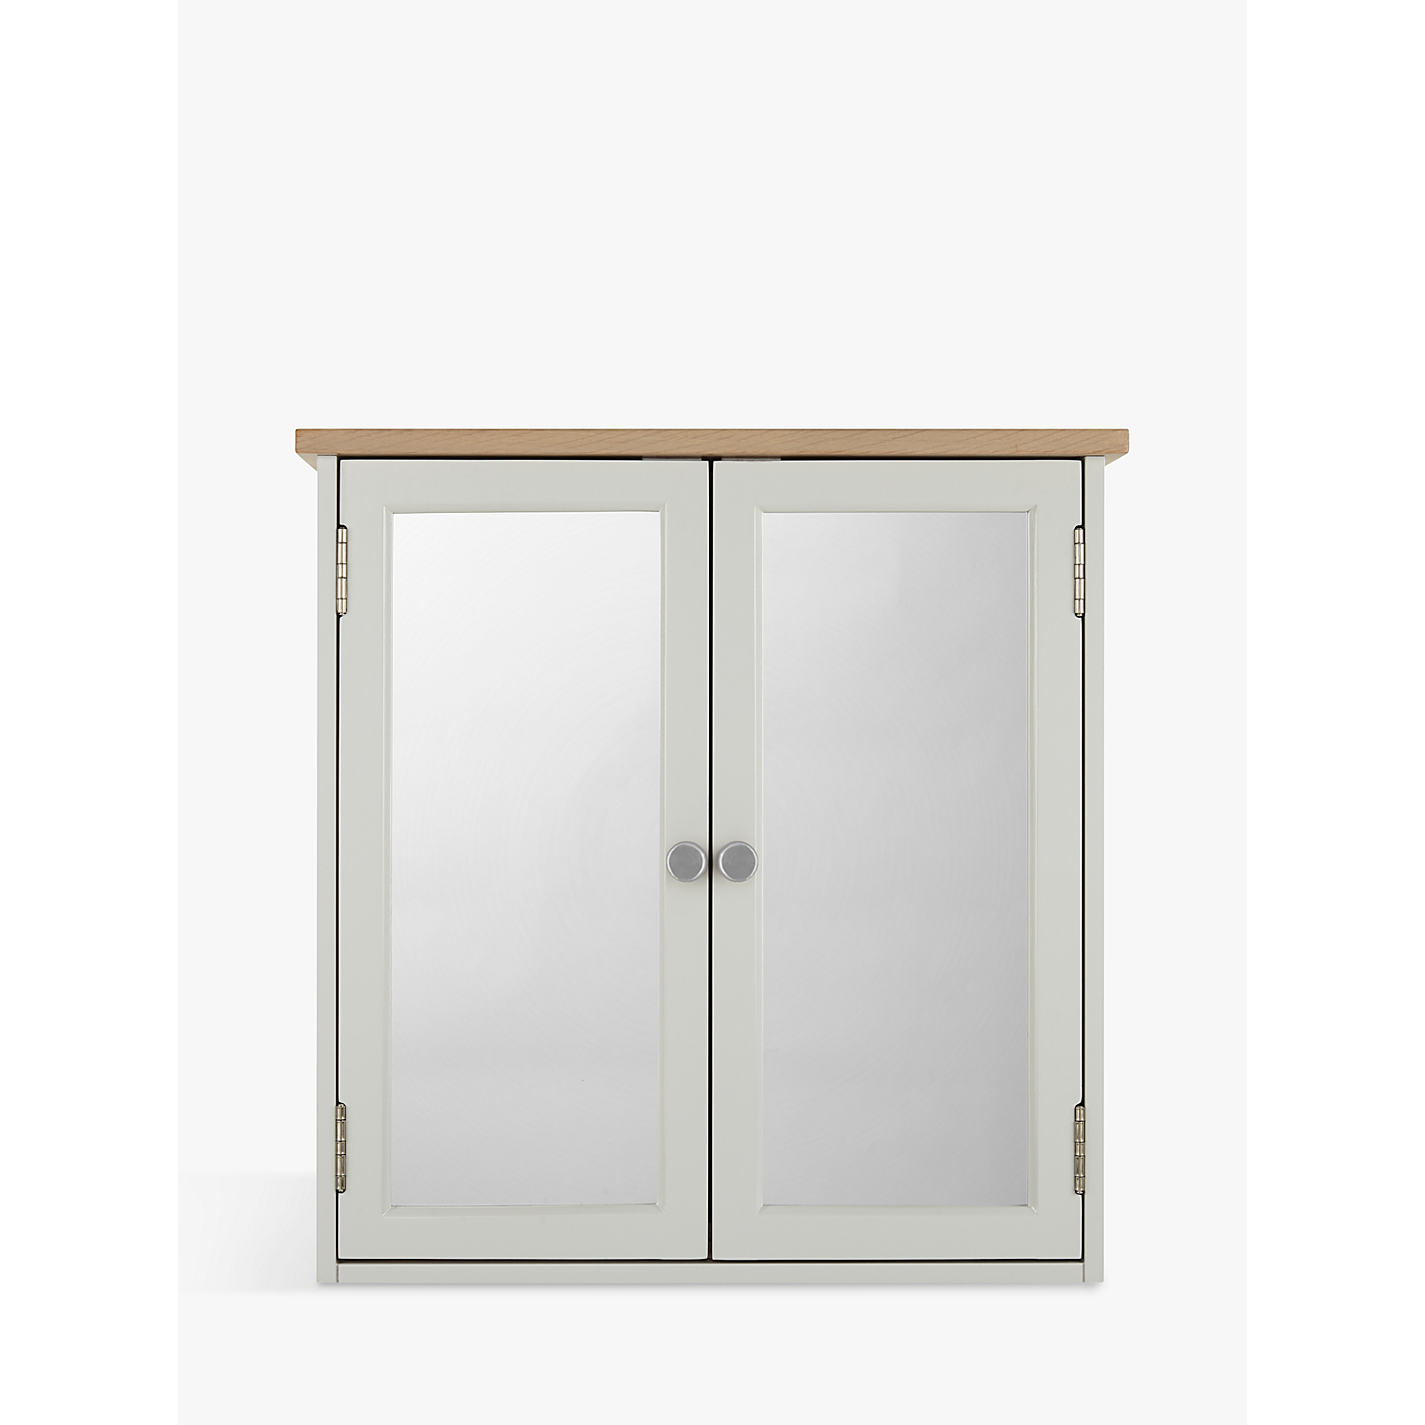 Light vintage danish furniture bathroom cabi lights on ideas for - Buy John Lewis Croft Collection Blakeney Double Mirrored Bathroom Cabinet Online At Johnlewis Com